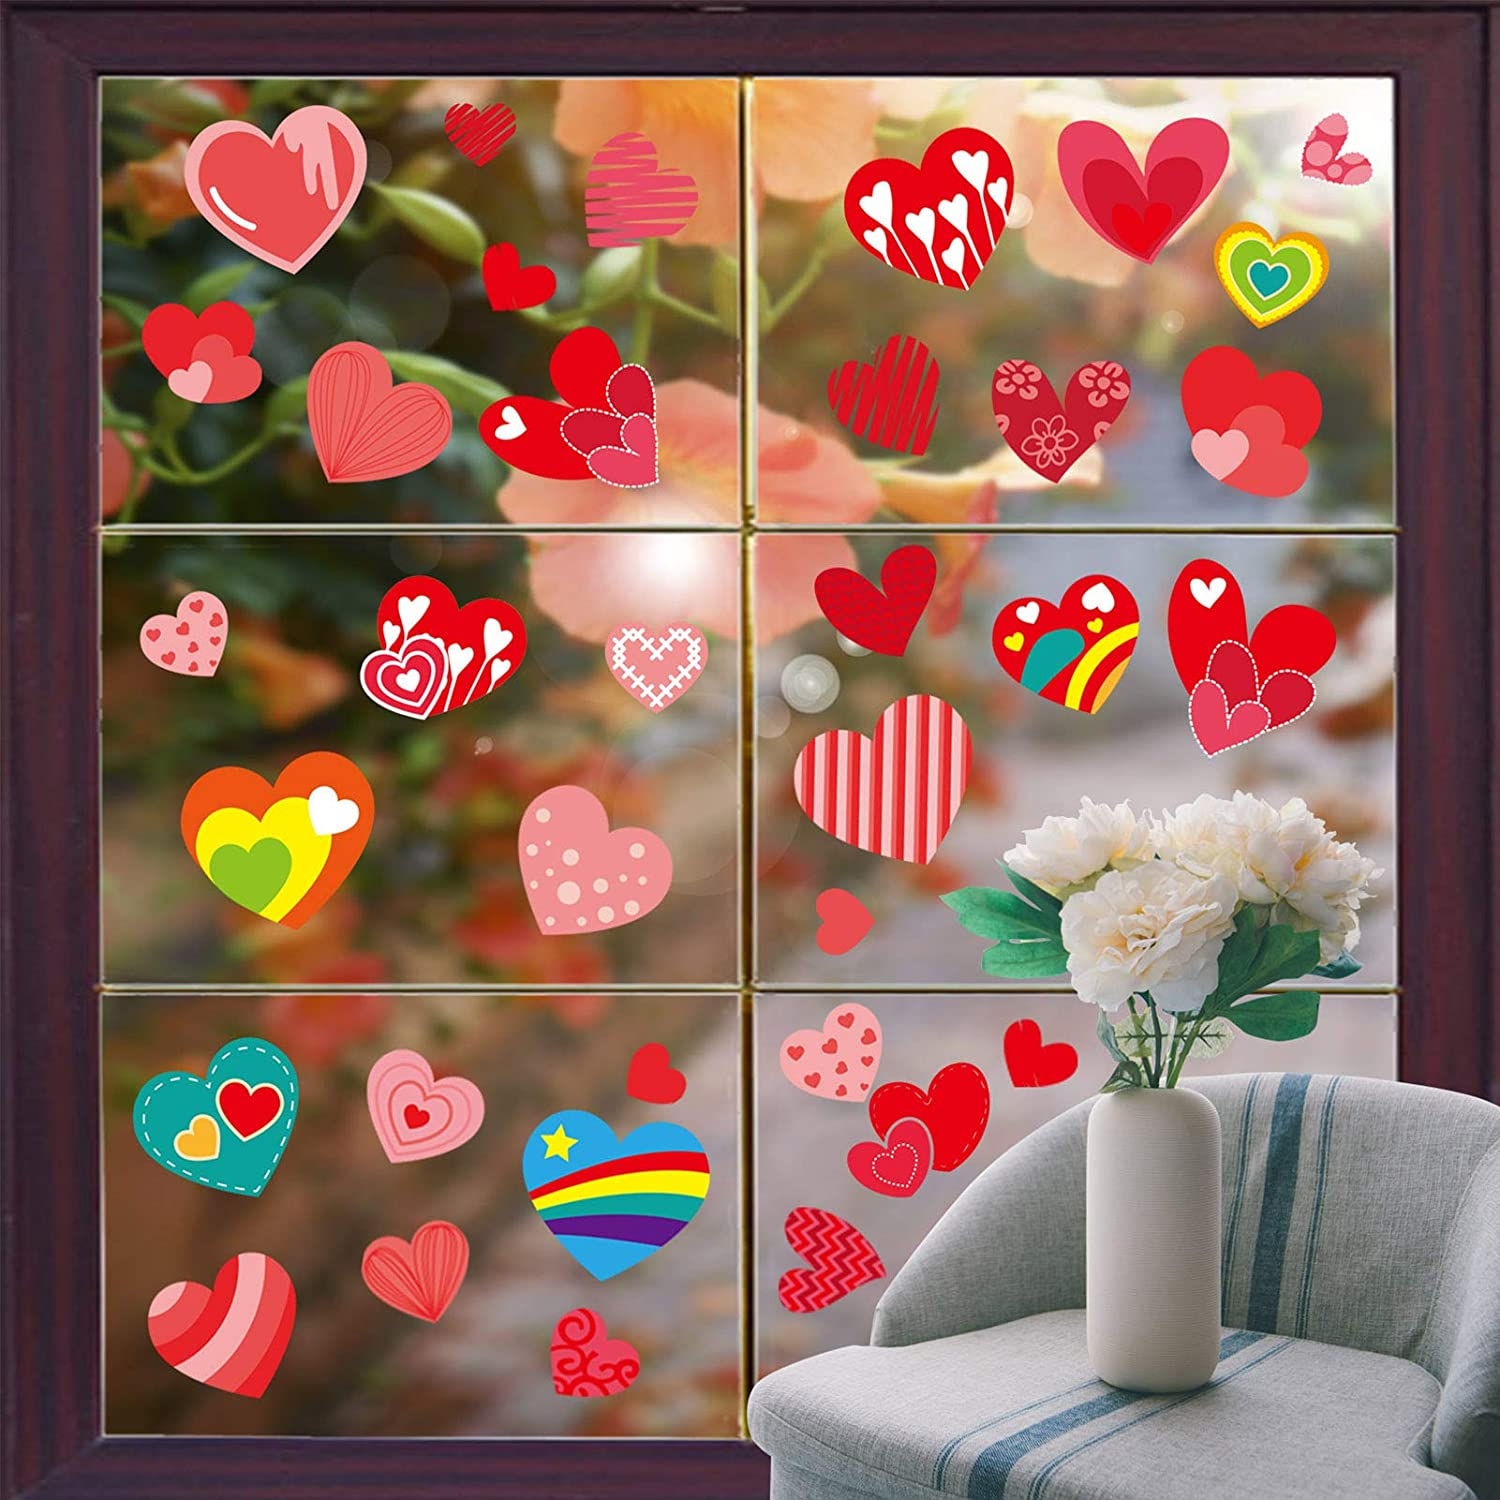 Anniversary Hearts Shape Glass Decals Cupid Static Window Decals Removable Vinyl Window Clings for Home Chutoral 14 Sheets Valentines Day Window Stickers Set Wedding Office,Valentines Party